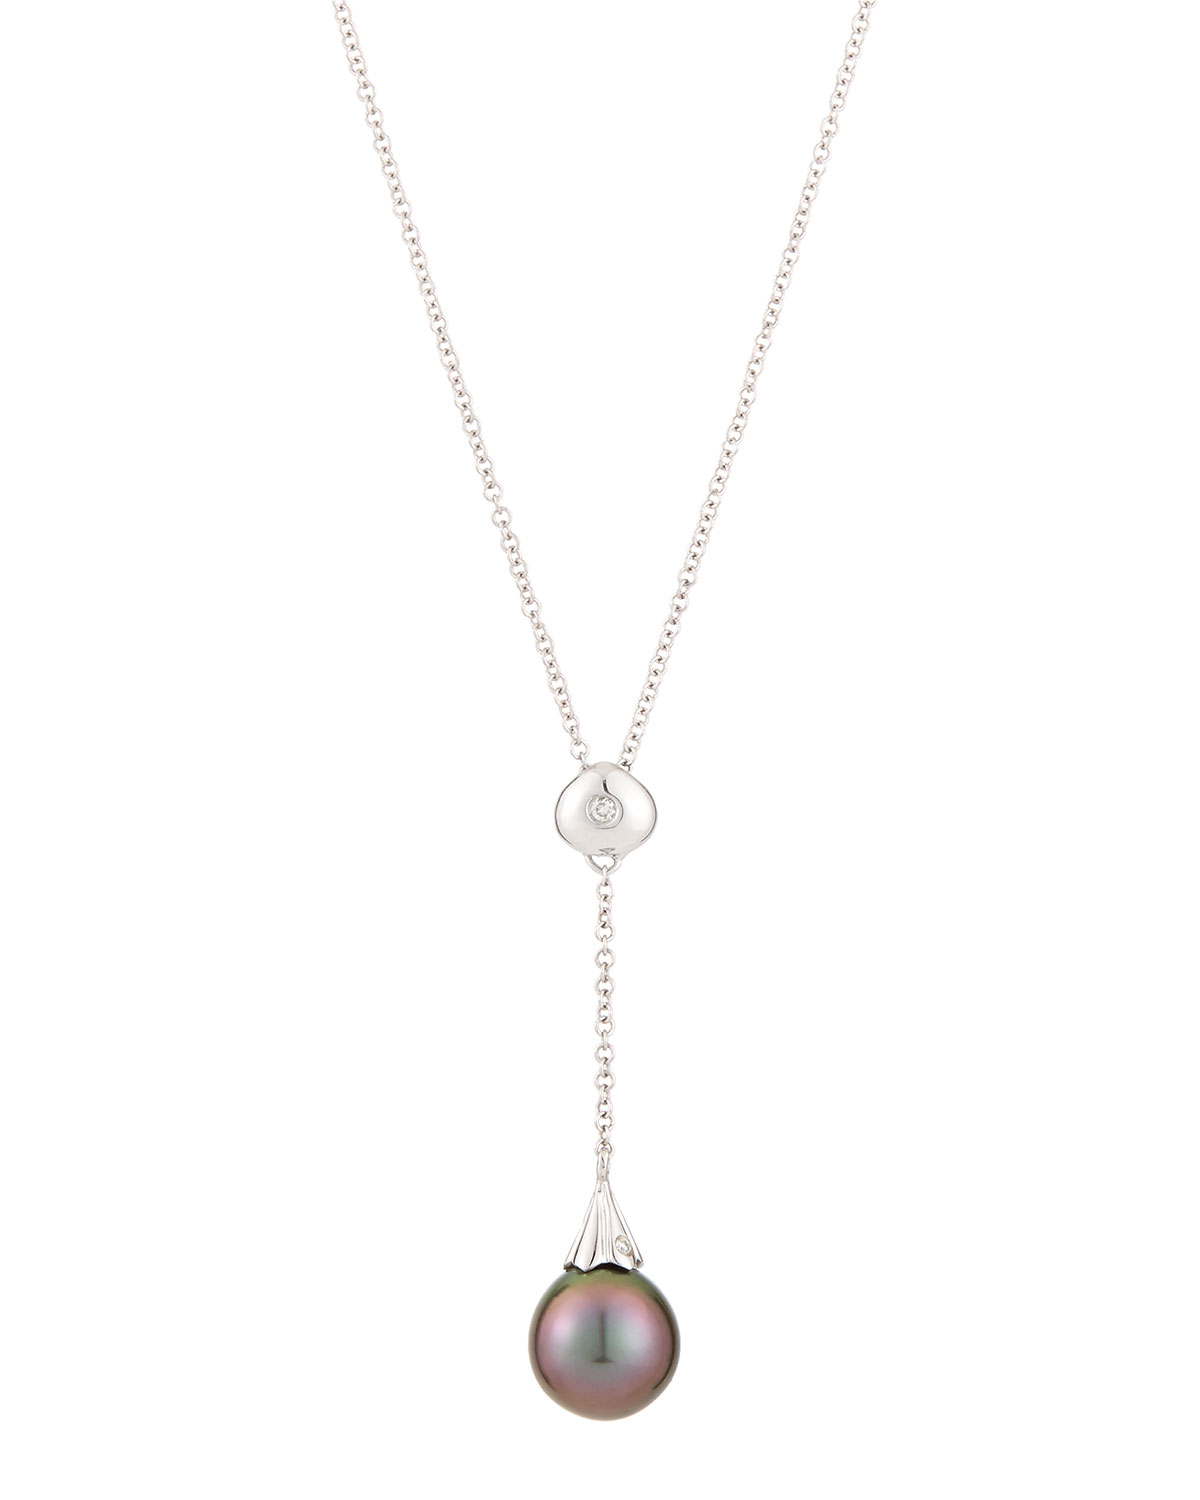 Belpearl 14k Diamond & Pearl Round Pendant Necklace RuWI7